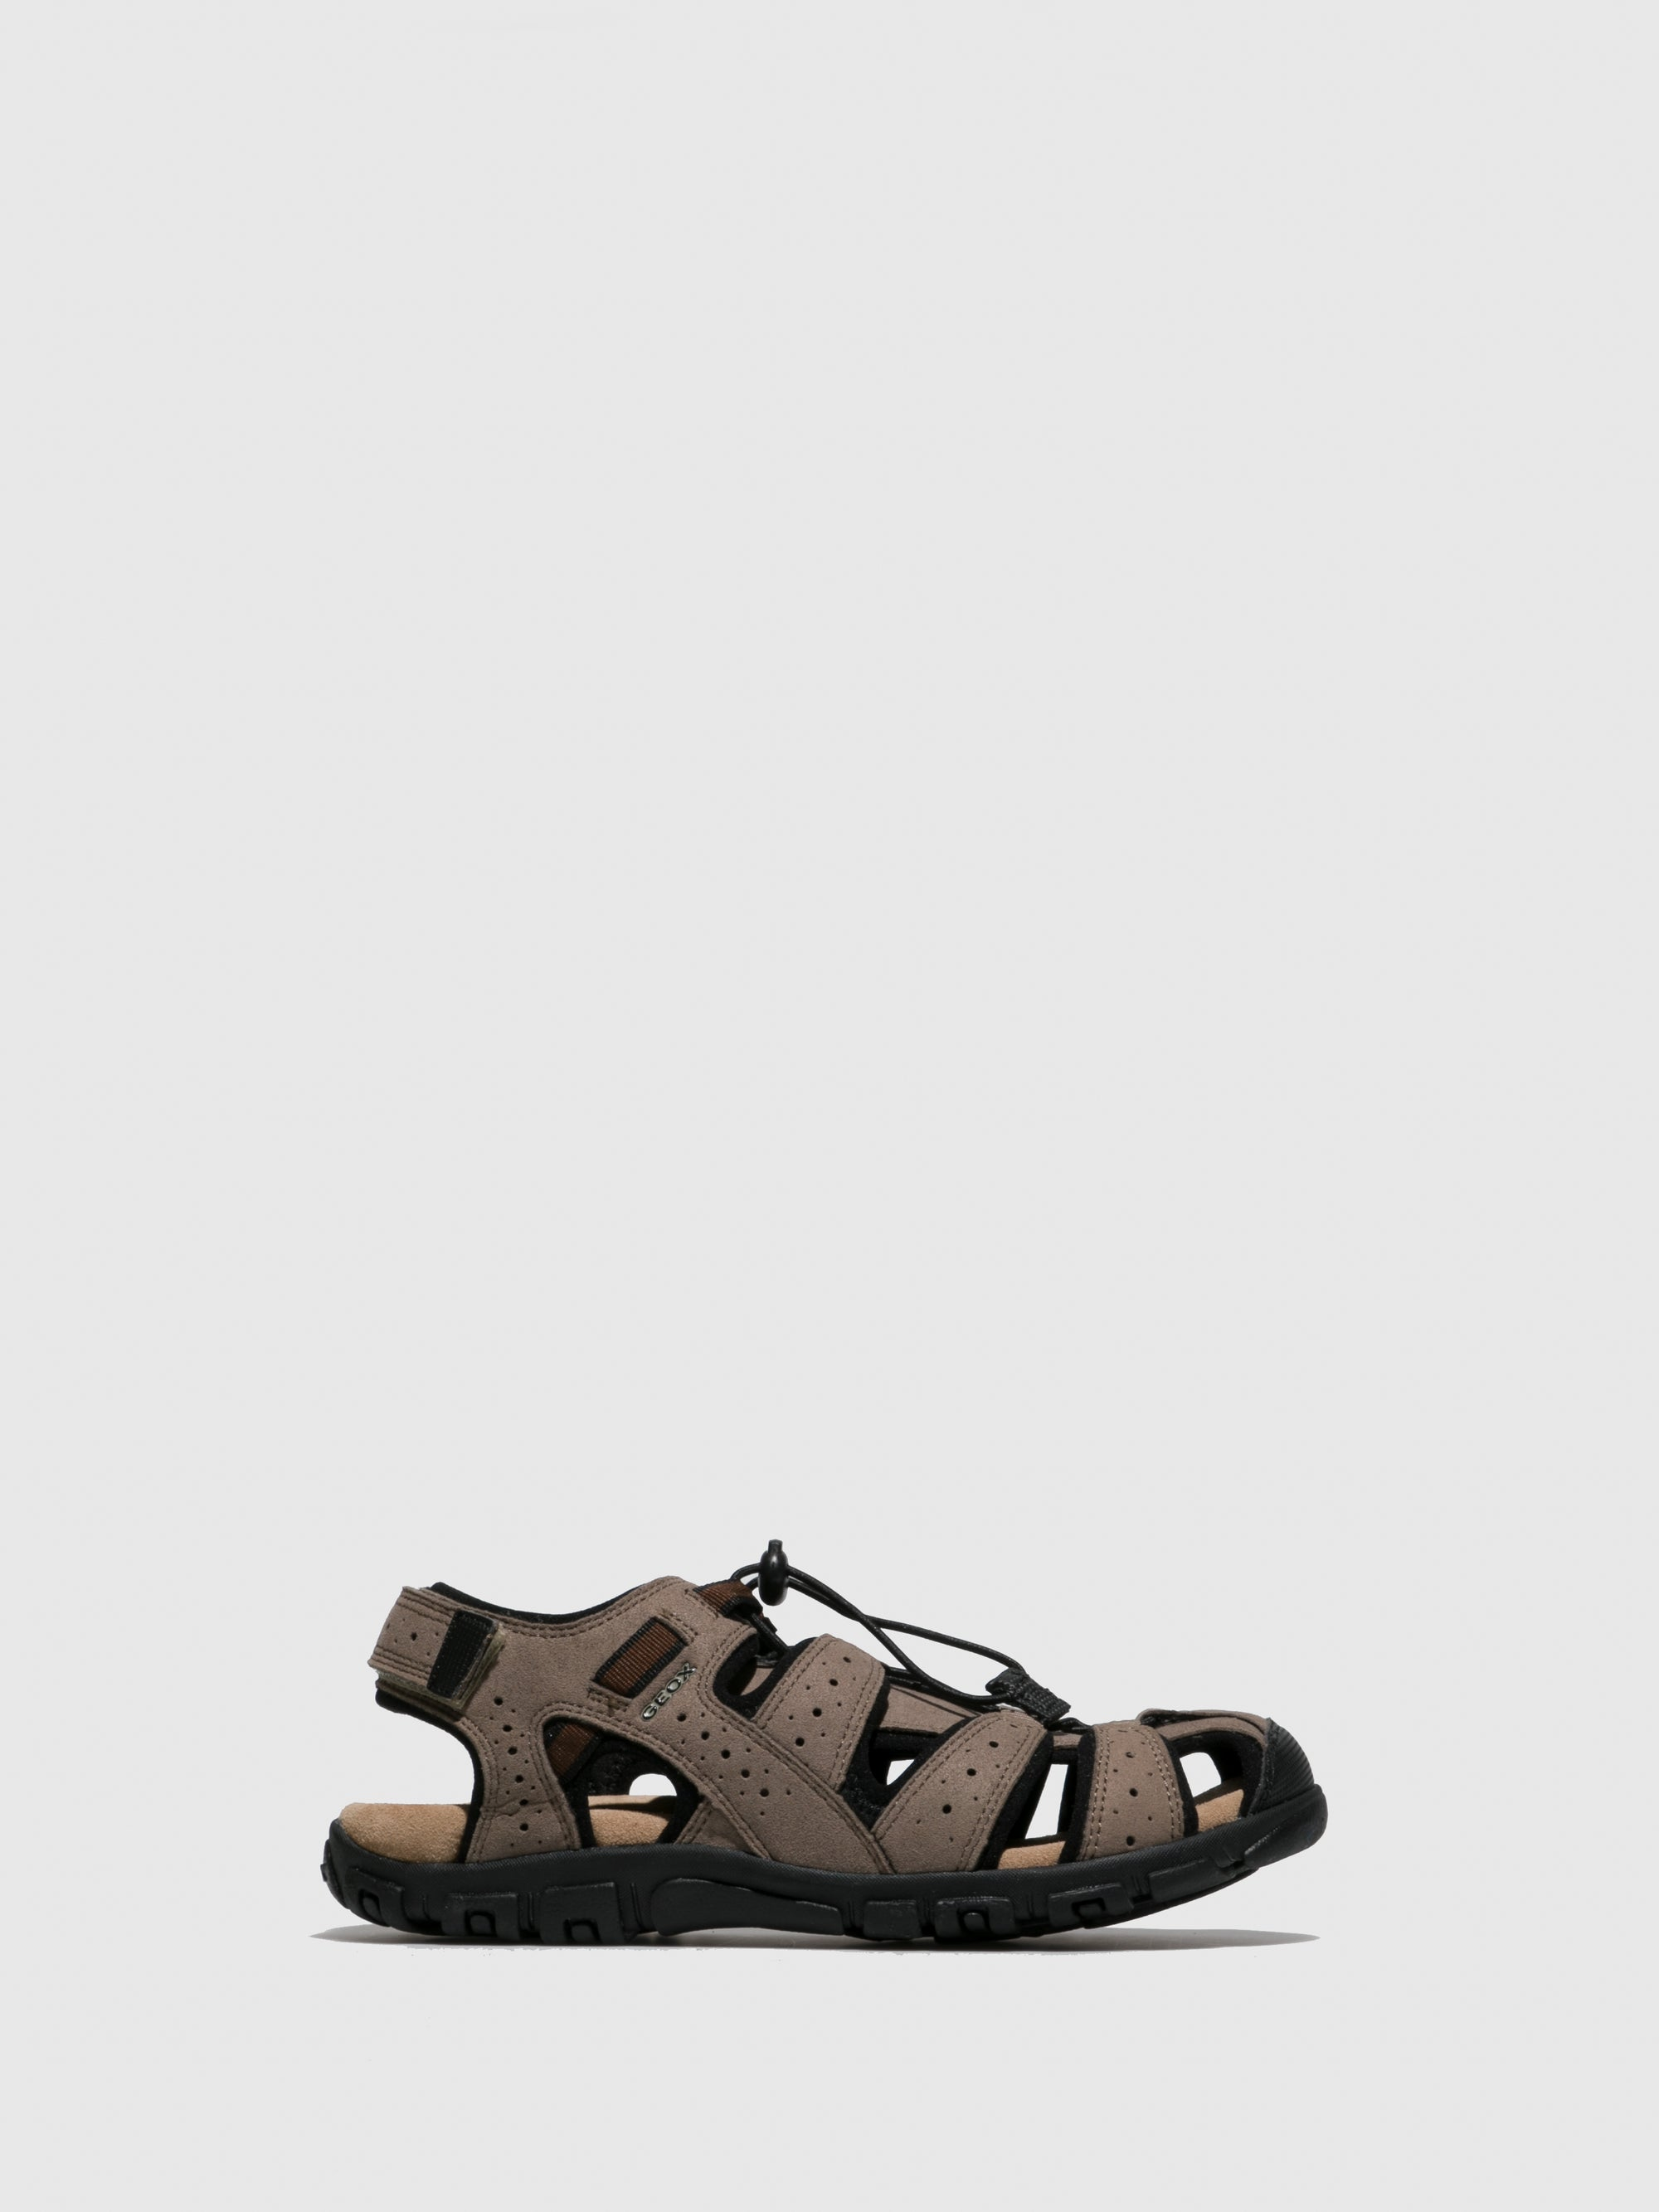 Geox Brown Crossover Sandals